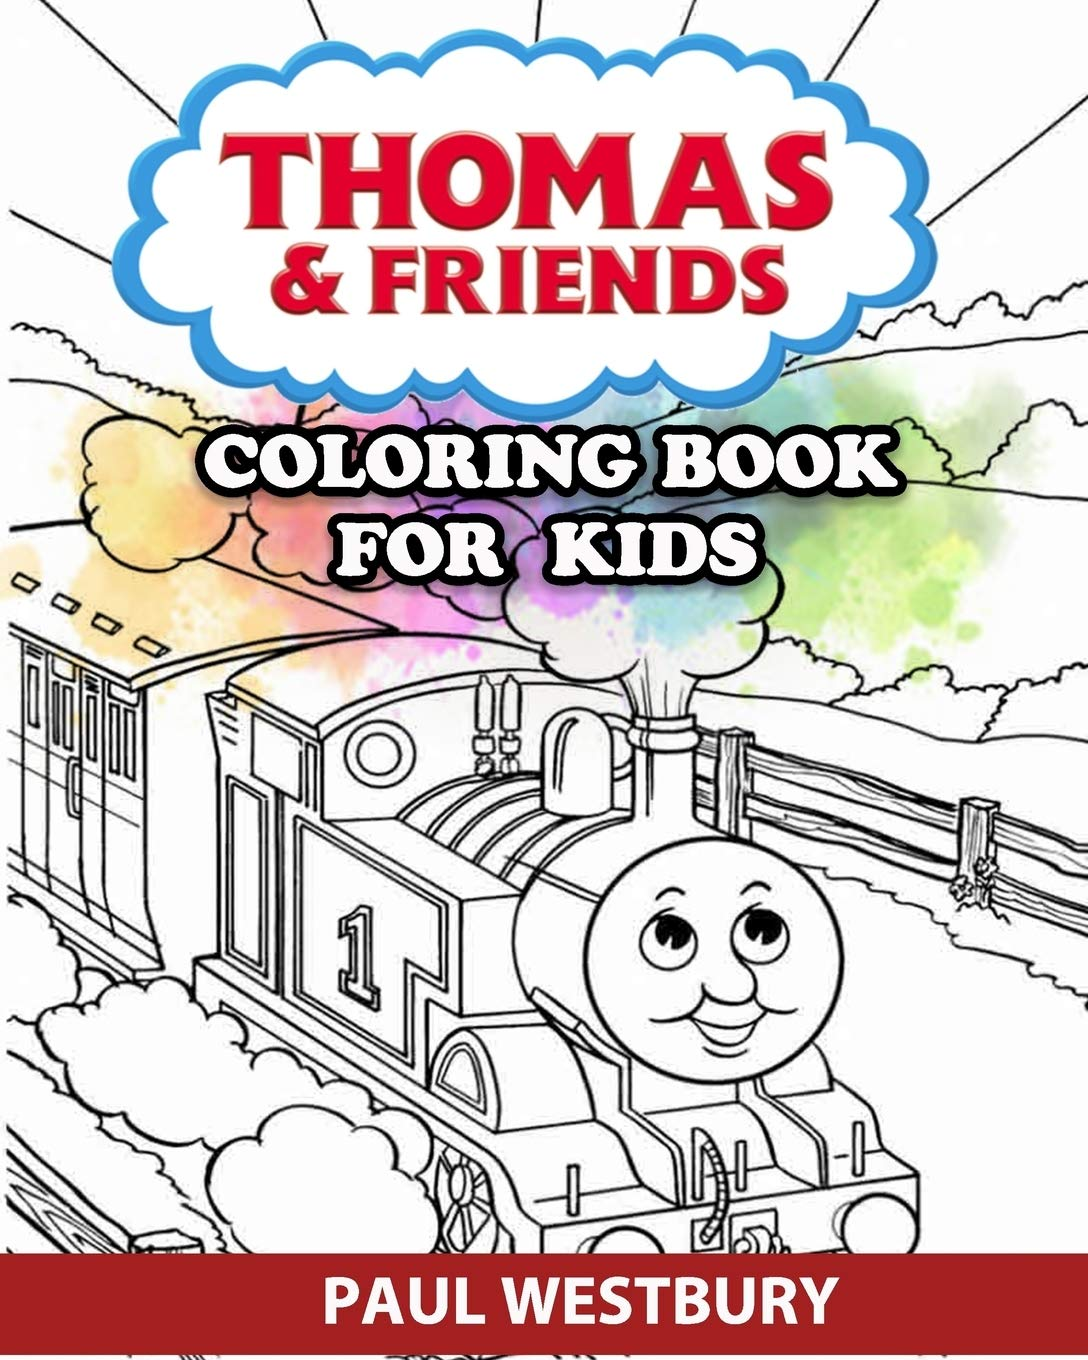 - Thomas & Friends Coloring Book For Kids: Coloring All Your